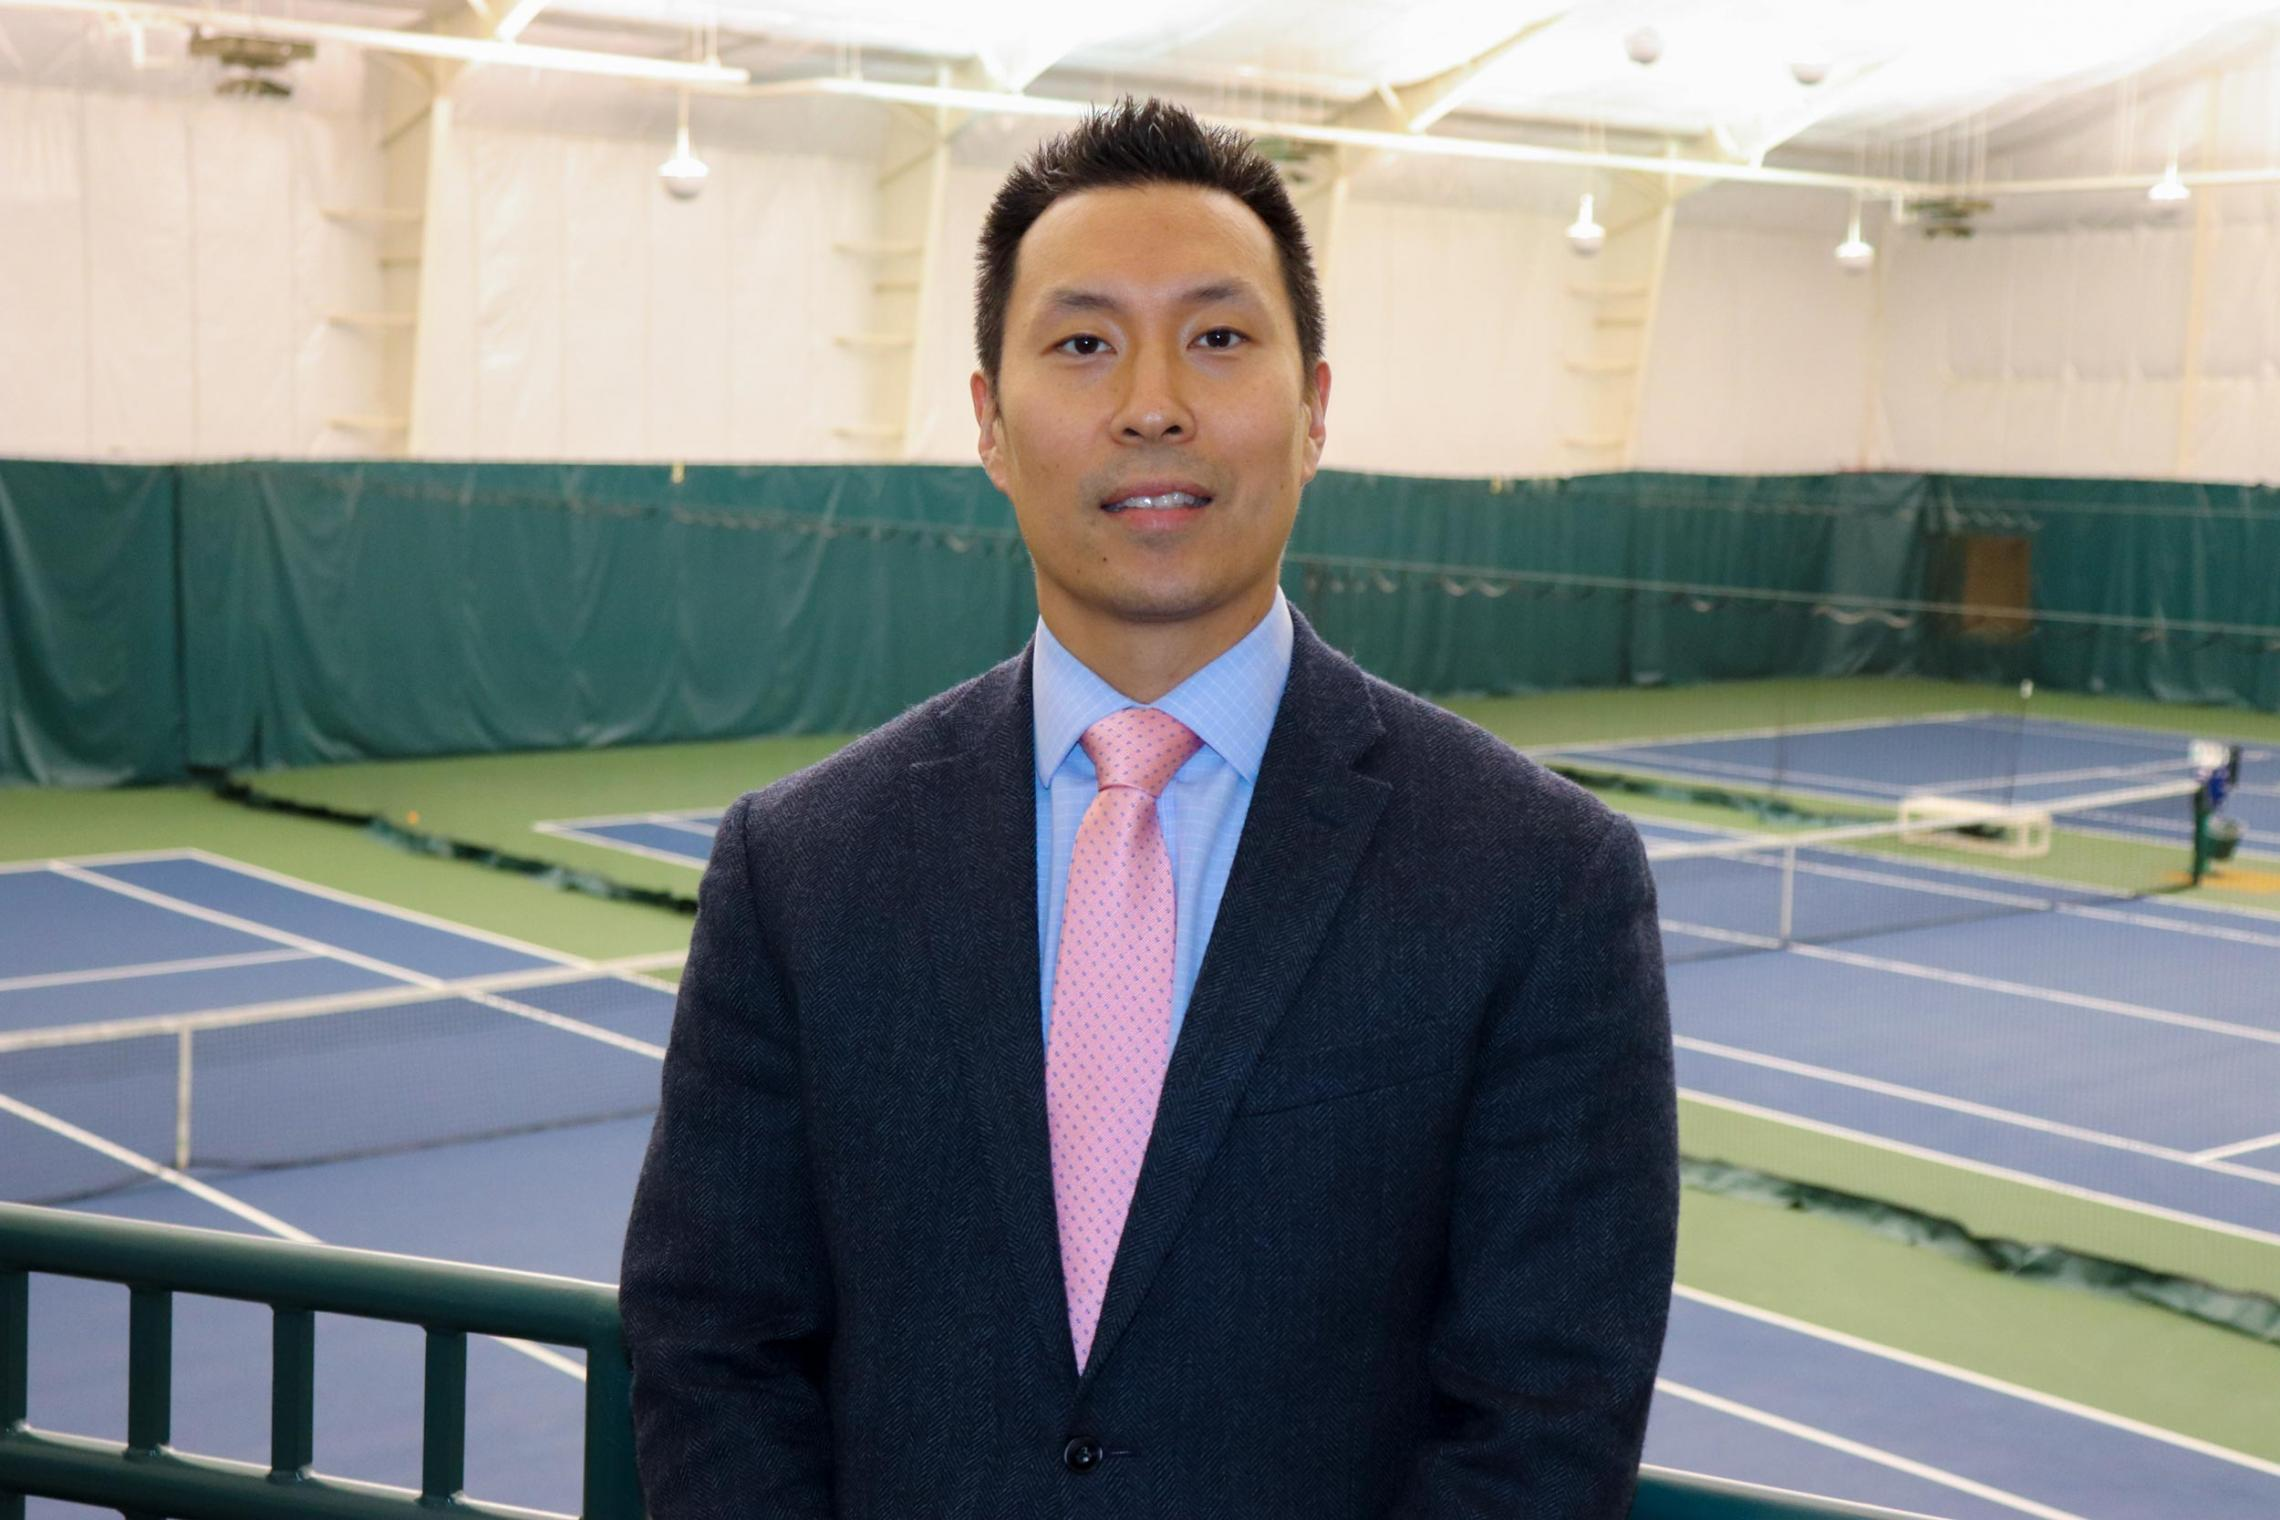 Dr. Joseph Park says a key to avoiding an Achilles injury is knowing the difference between static and dynamic stretching. (Contributed photo)